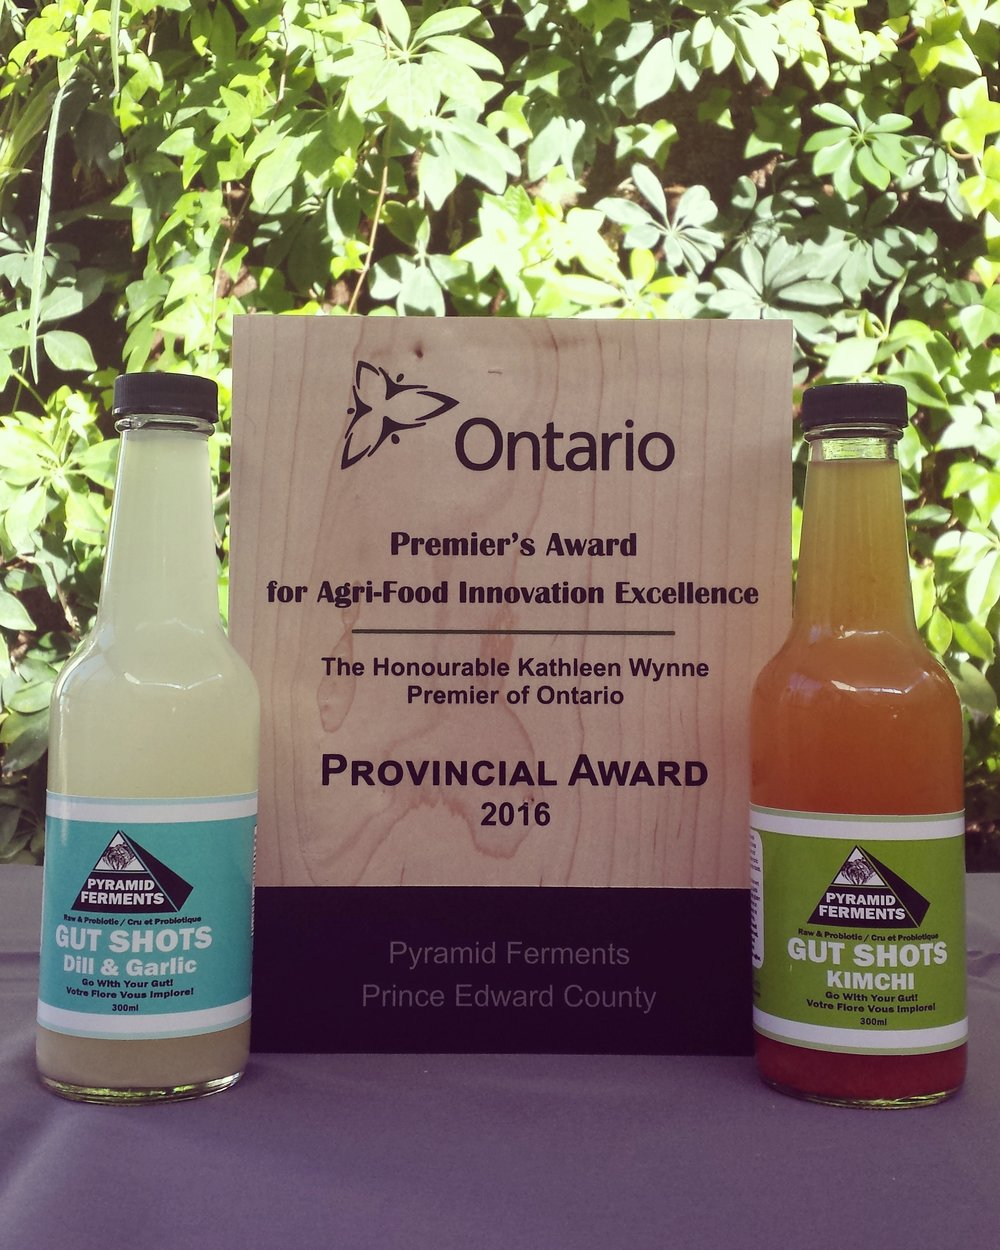 "We're honoured to have received our second Premiers award for Agri-food Innovation for our 'Gut Shots'. #GoWithYourGut   ""When Jenna Empey and Alex Currie began offering Gut Shots, people lined up - not for a punch to the stomach, but for 300 millilitres of probiotic-rich tonic that punches up the levels of healthy bacteria in their digestive system. The product proved so popular at farmers' markets that Empey and Currie are now marketing to retail outlets and discussing partnerships with juice companies. The tonic is simply the brine left over from their main activity: producing kimchi, sauerkraut and other fermented foods. This former waste product accounted for 13 per cent of their sales in 2015, and they expect that number to double in 2016. To keep up with demand for the tonic, they've tripled kimchi and sauerkraut production - a boon for local cabbage producers."""